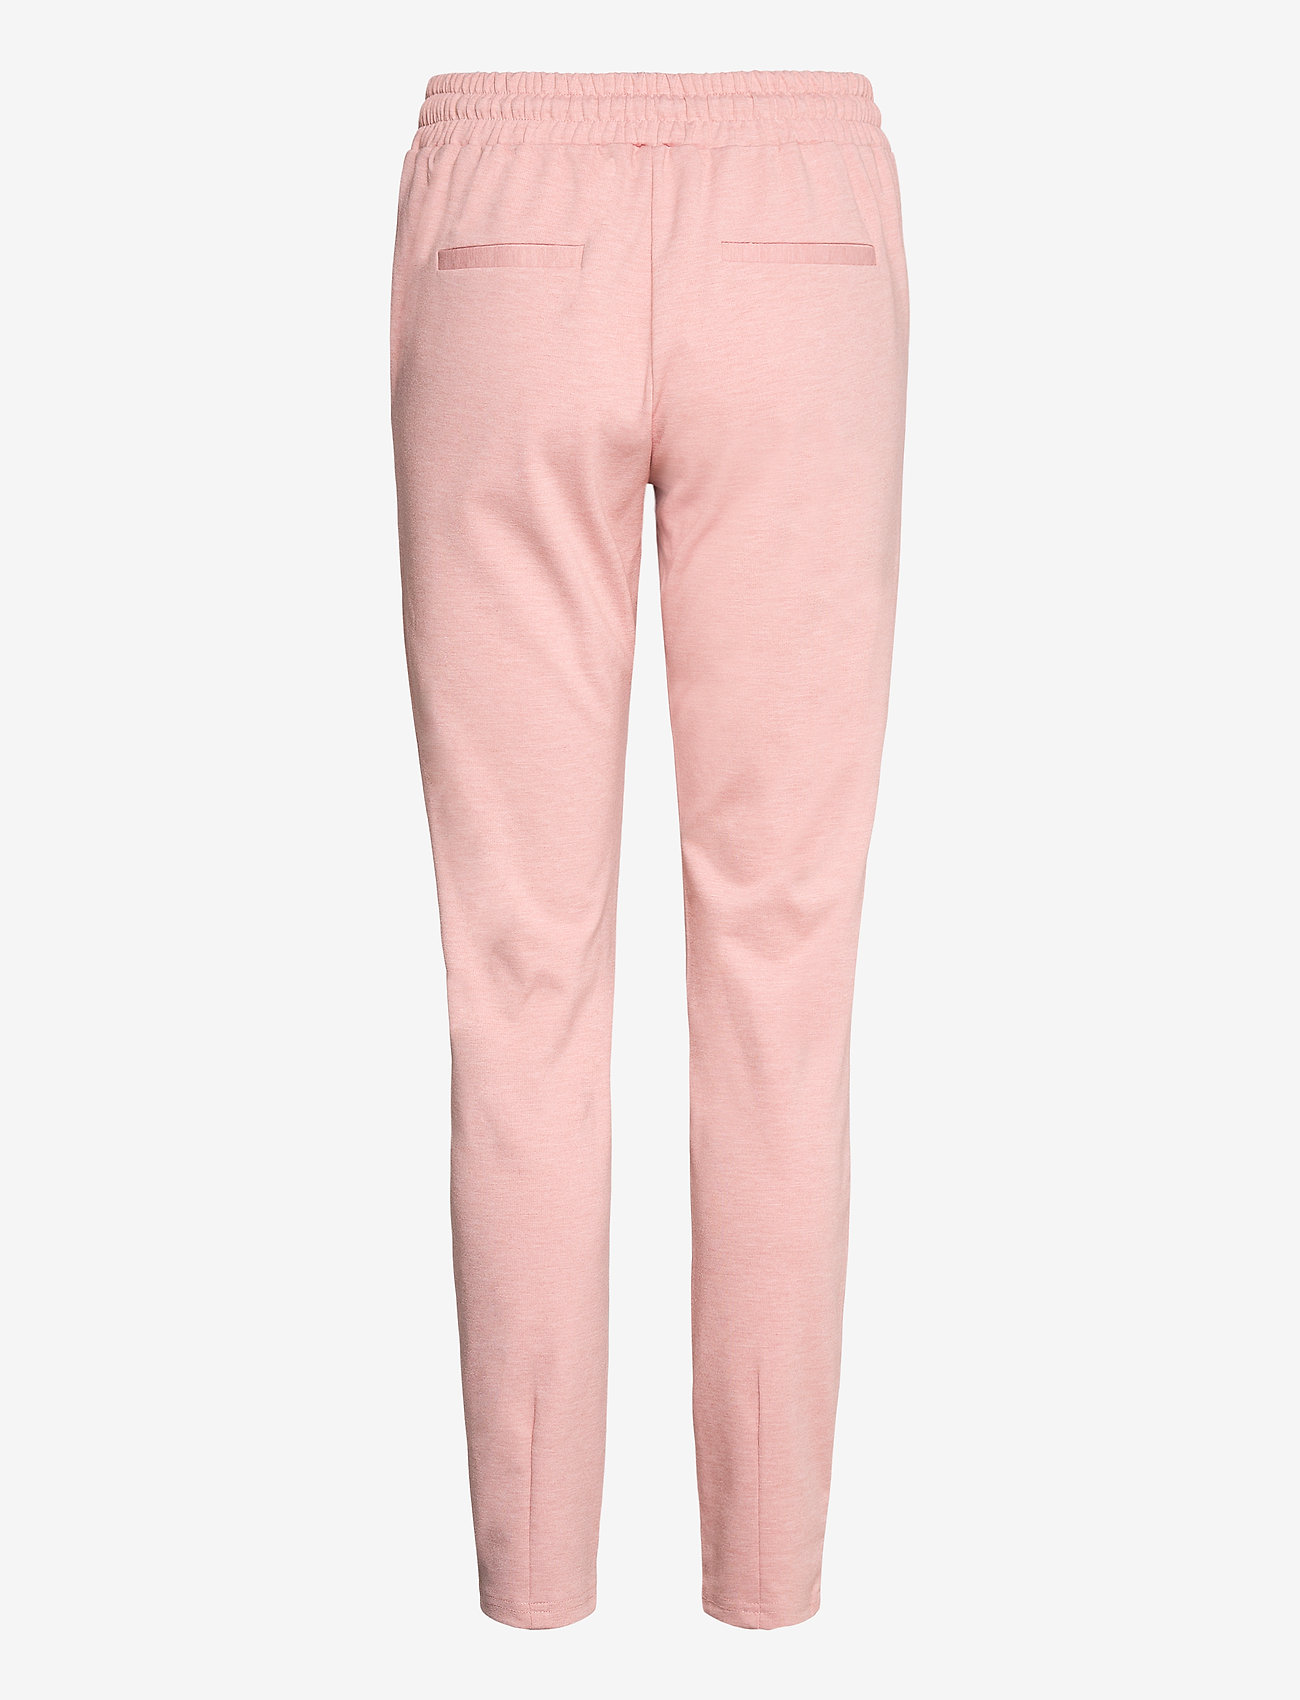 b.young - Rizetta pants 2 - Jersey - slim fit trousers - rose tan melange - 1